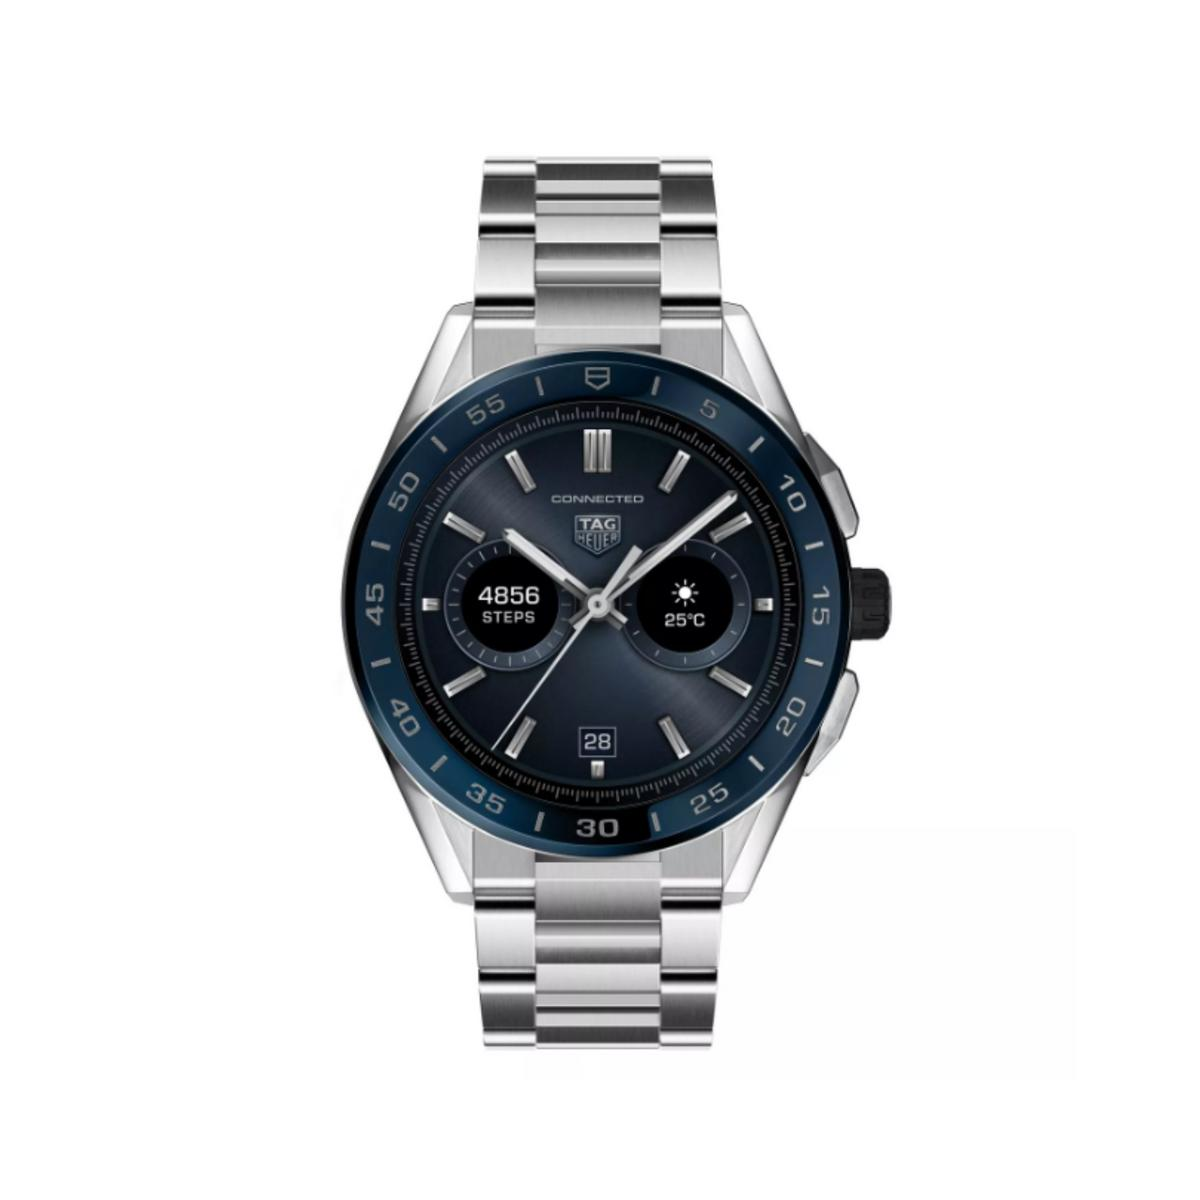 TAG Heuer Connected Stainless Steel Bracelet Watch